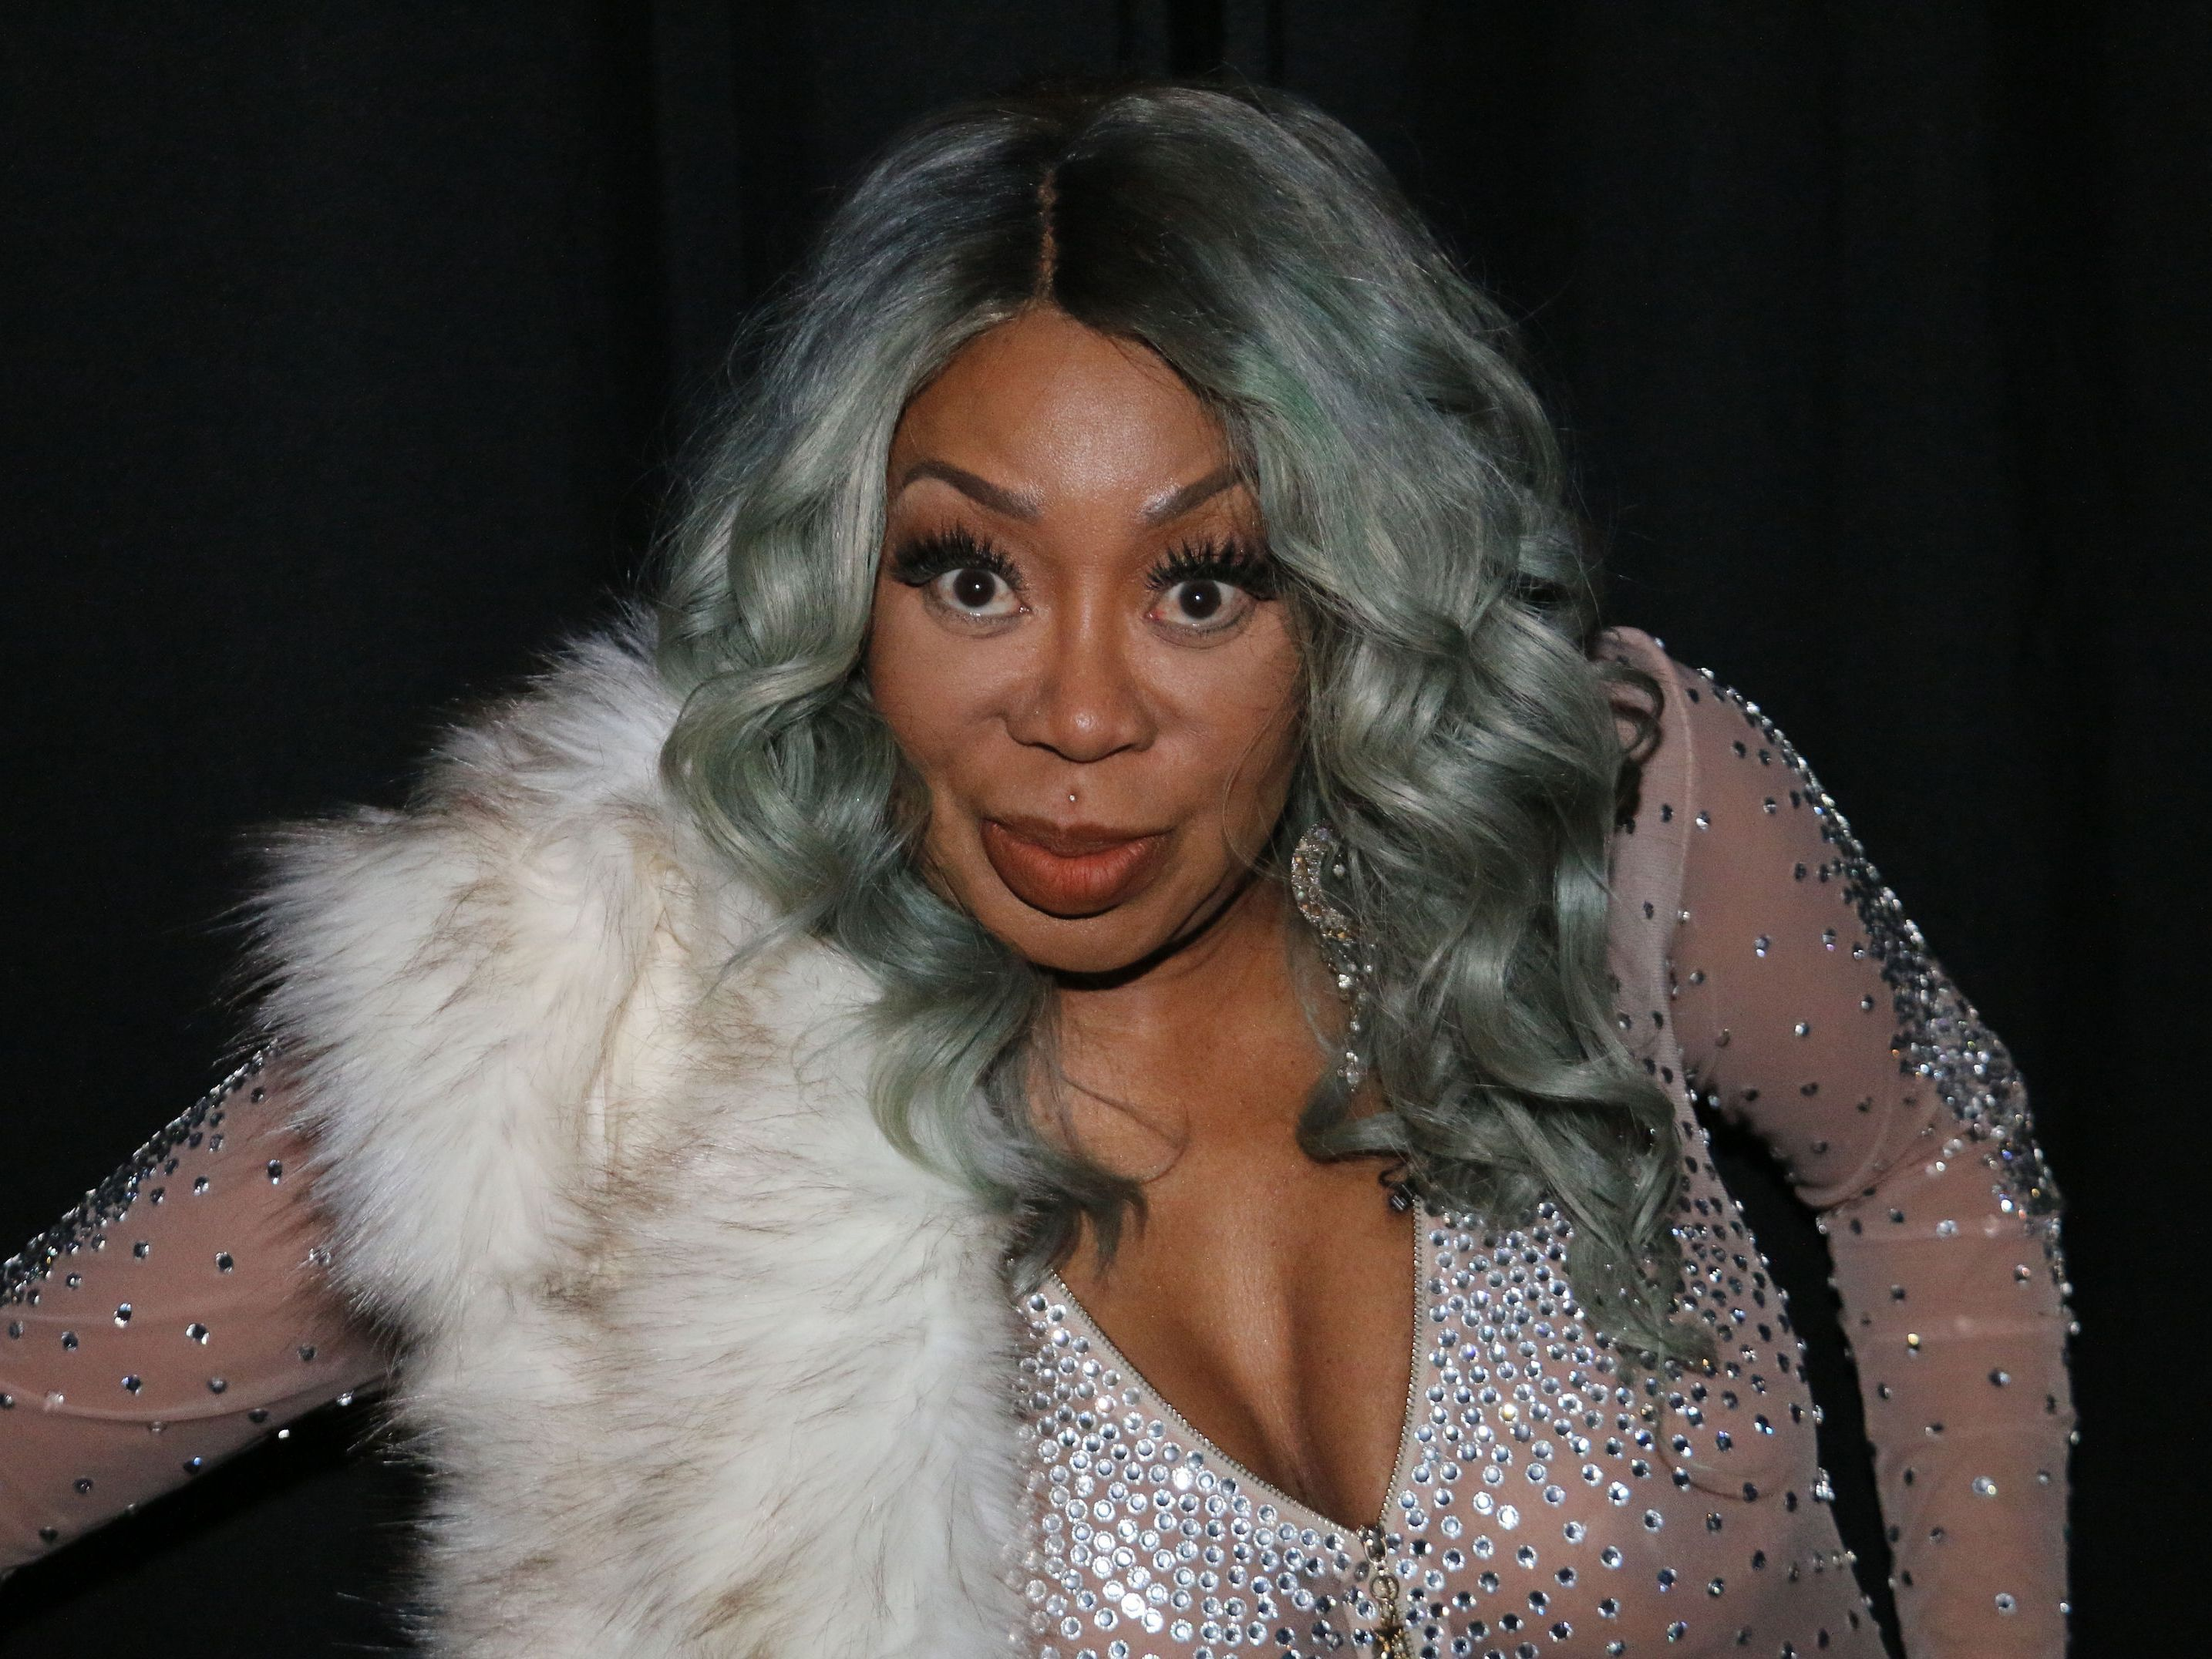 """If I Saw Her Now, I Would End Up In Jail:"""" Lyrica G. is Disappointed In  Pam's Behavior at the Love & Hip Hop Hollywood Reunion - VH1 News"""